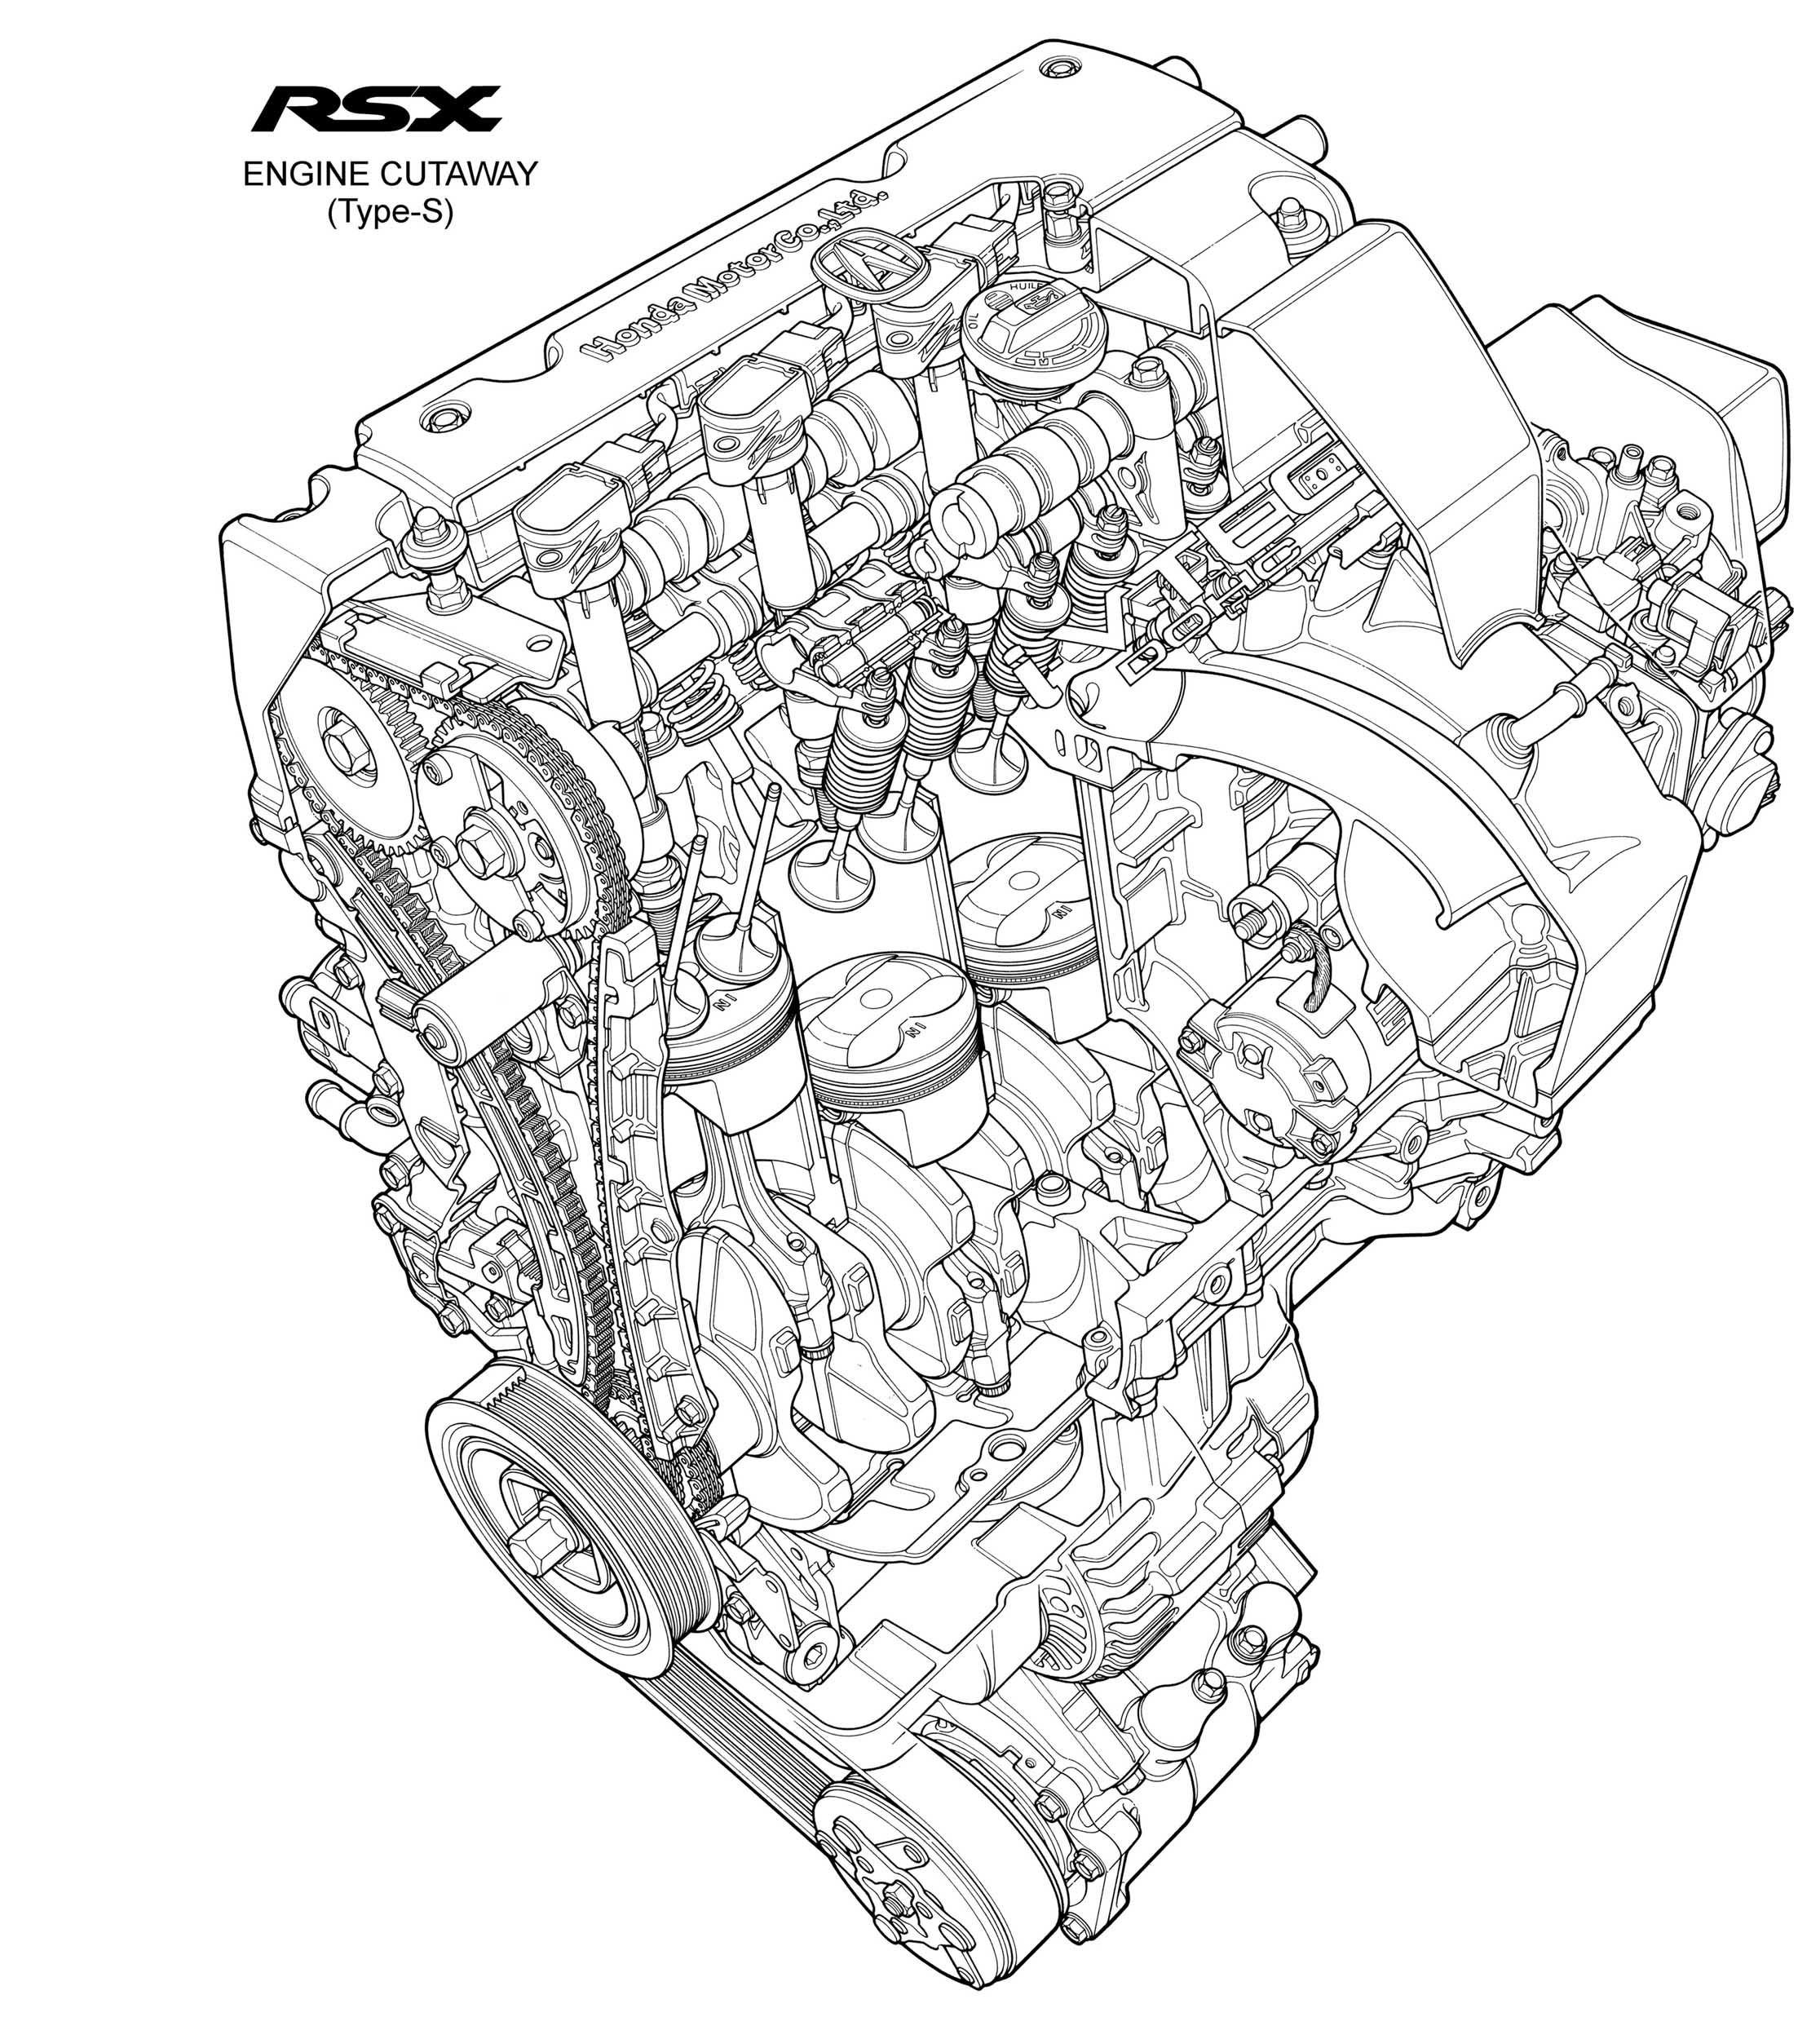 Acura Rsx Type S Engine Cutaway